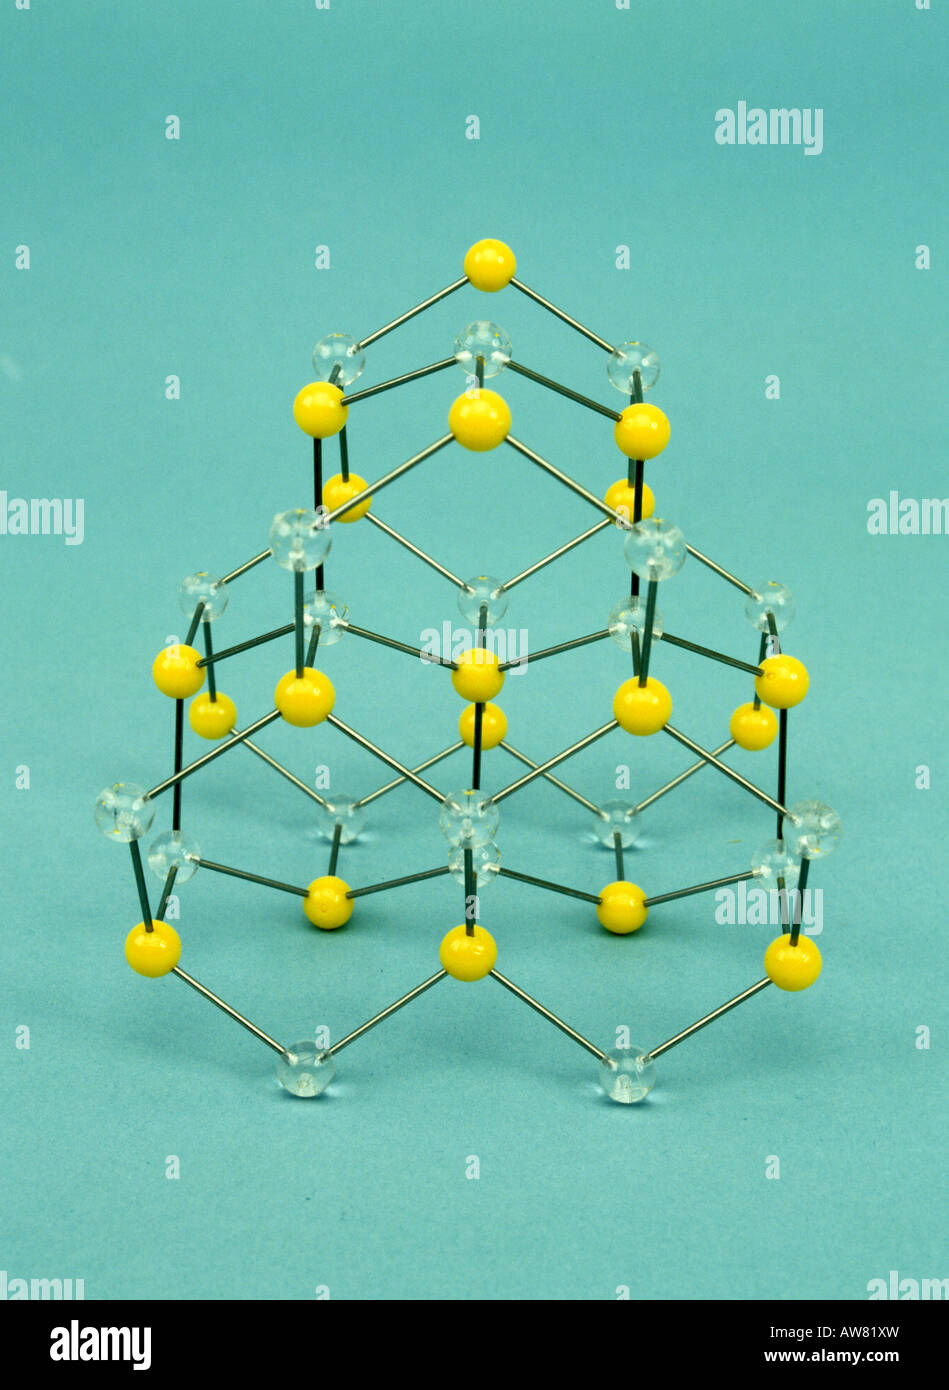 A molecular model of wurtzite ZnS - Stock Image